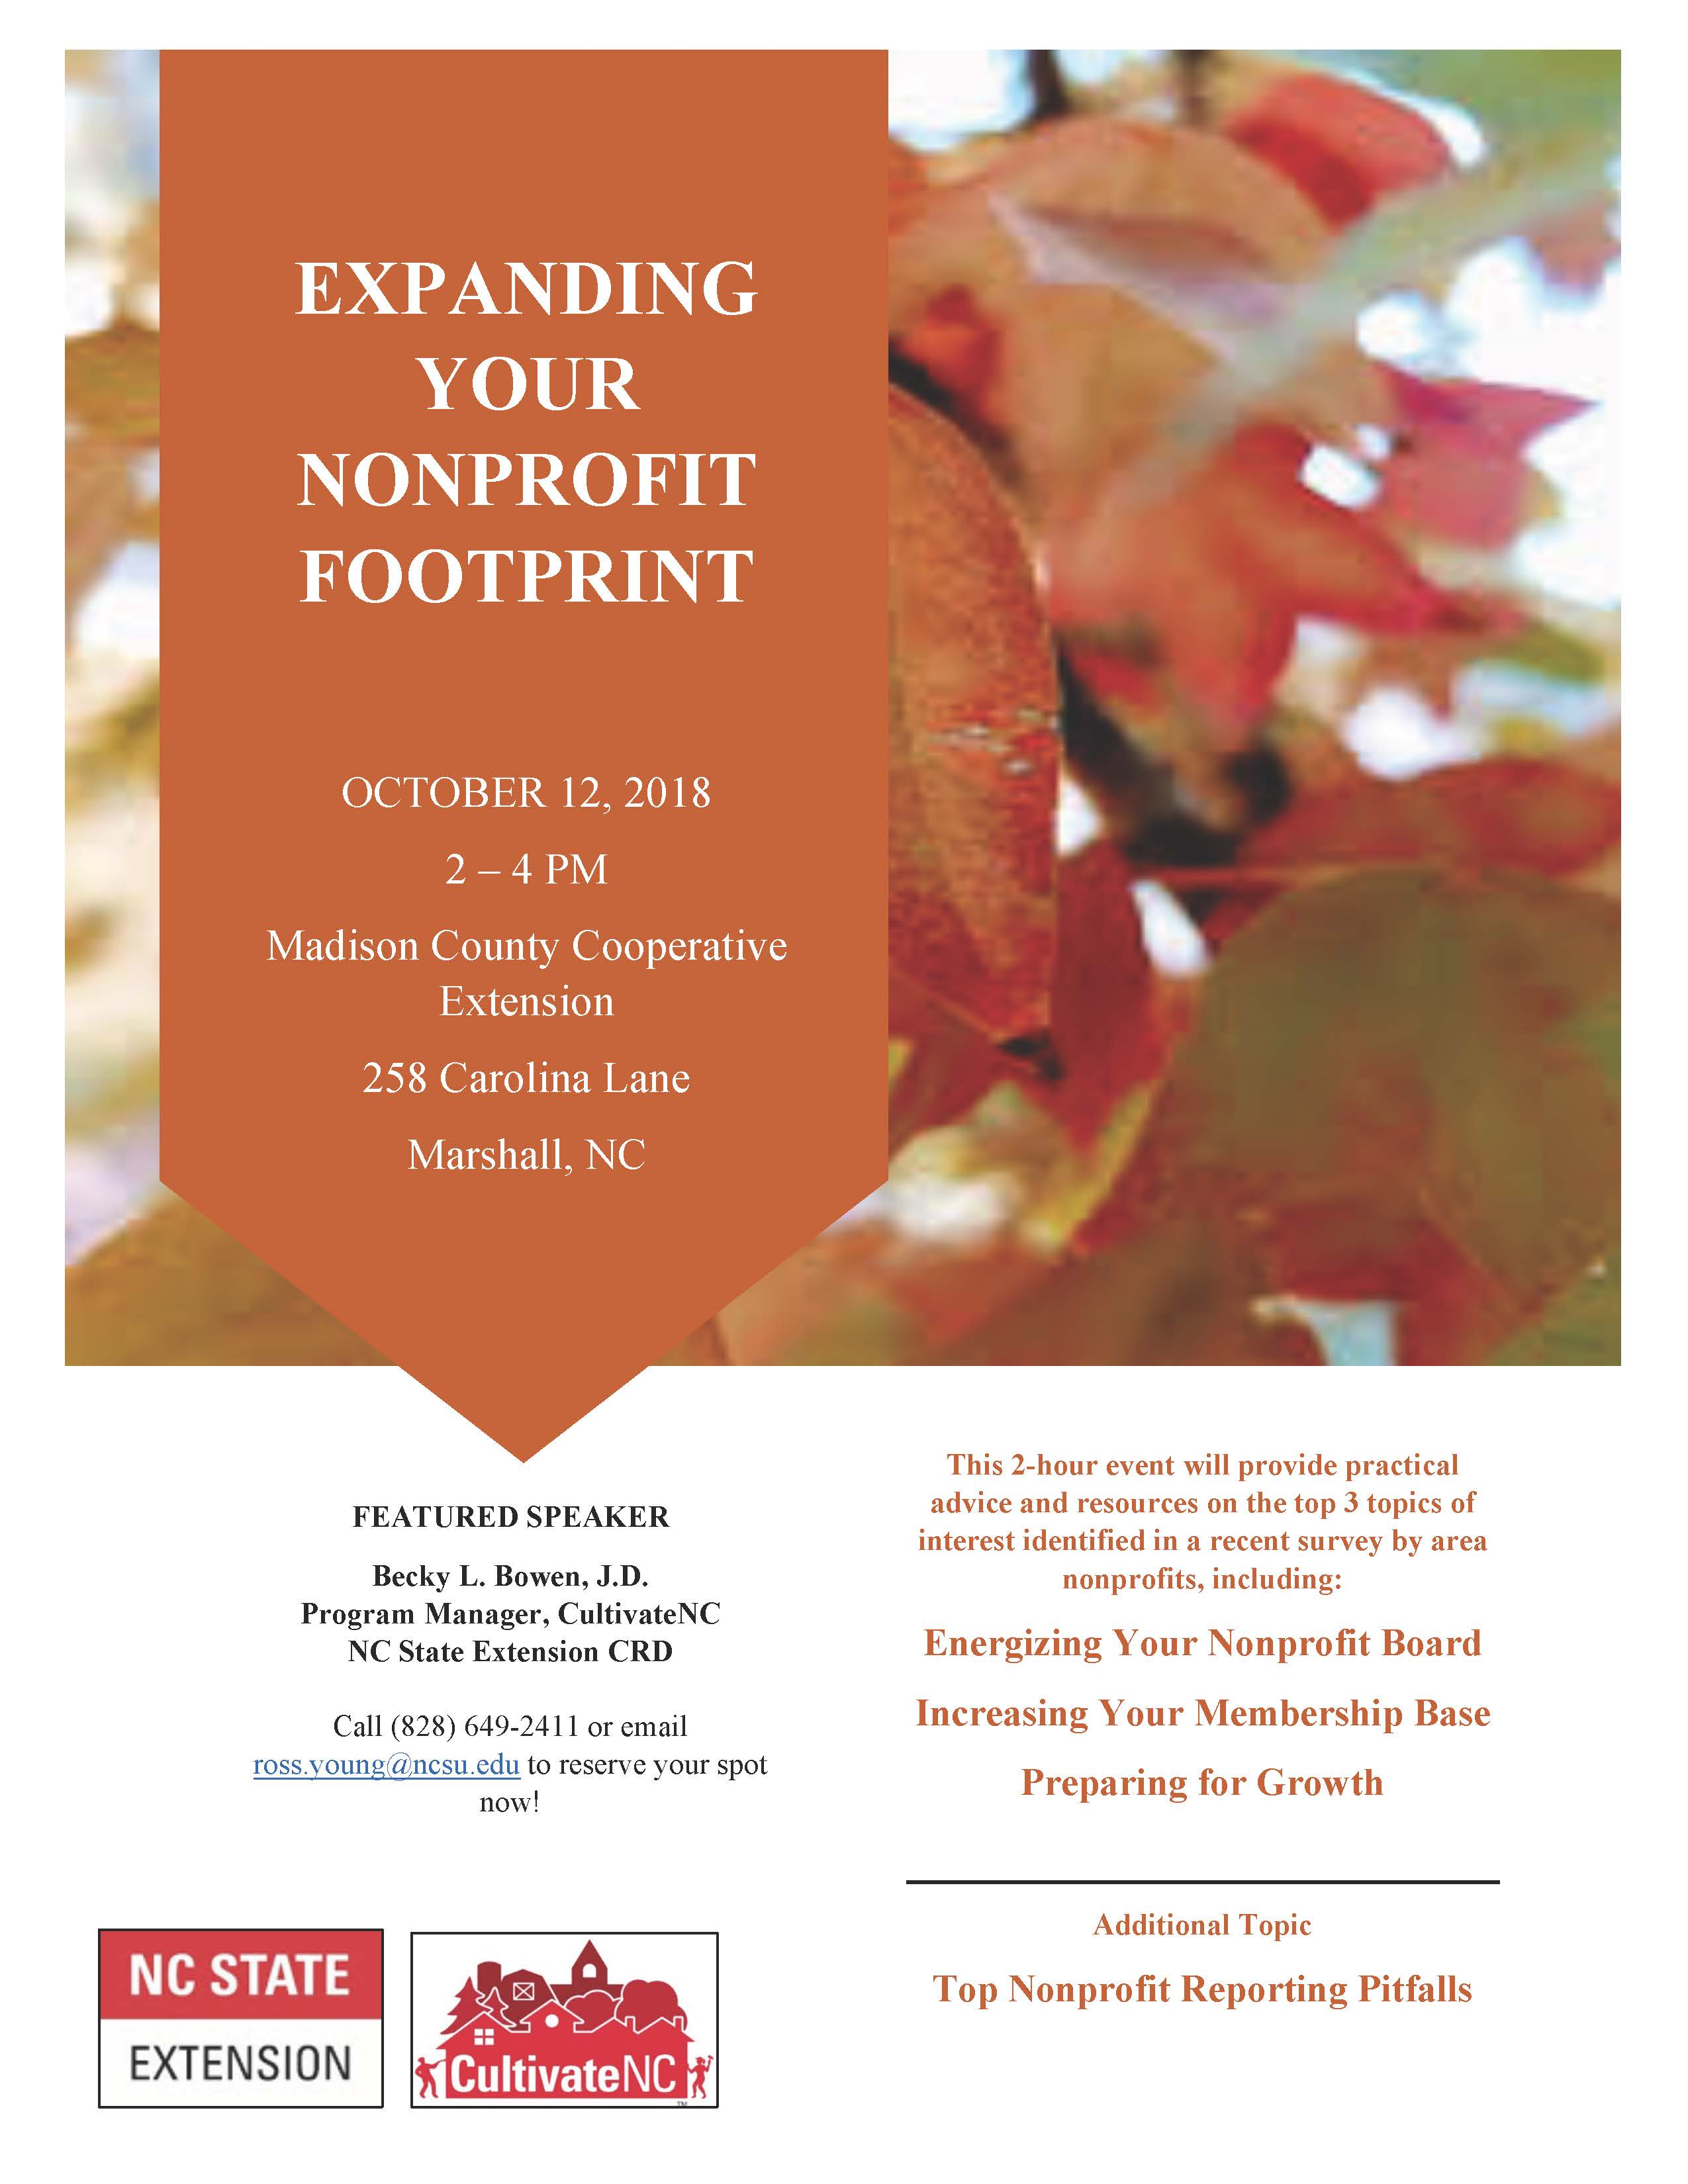 Expanding Your Nonprofit Footprint flyer image